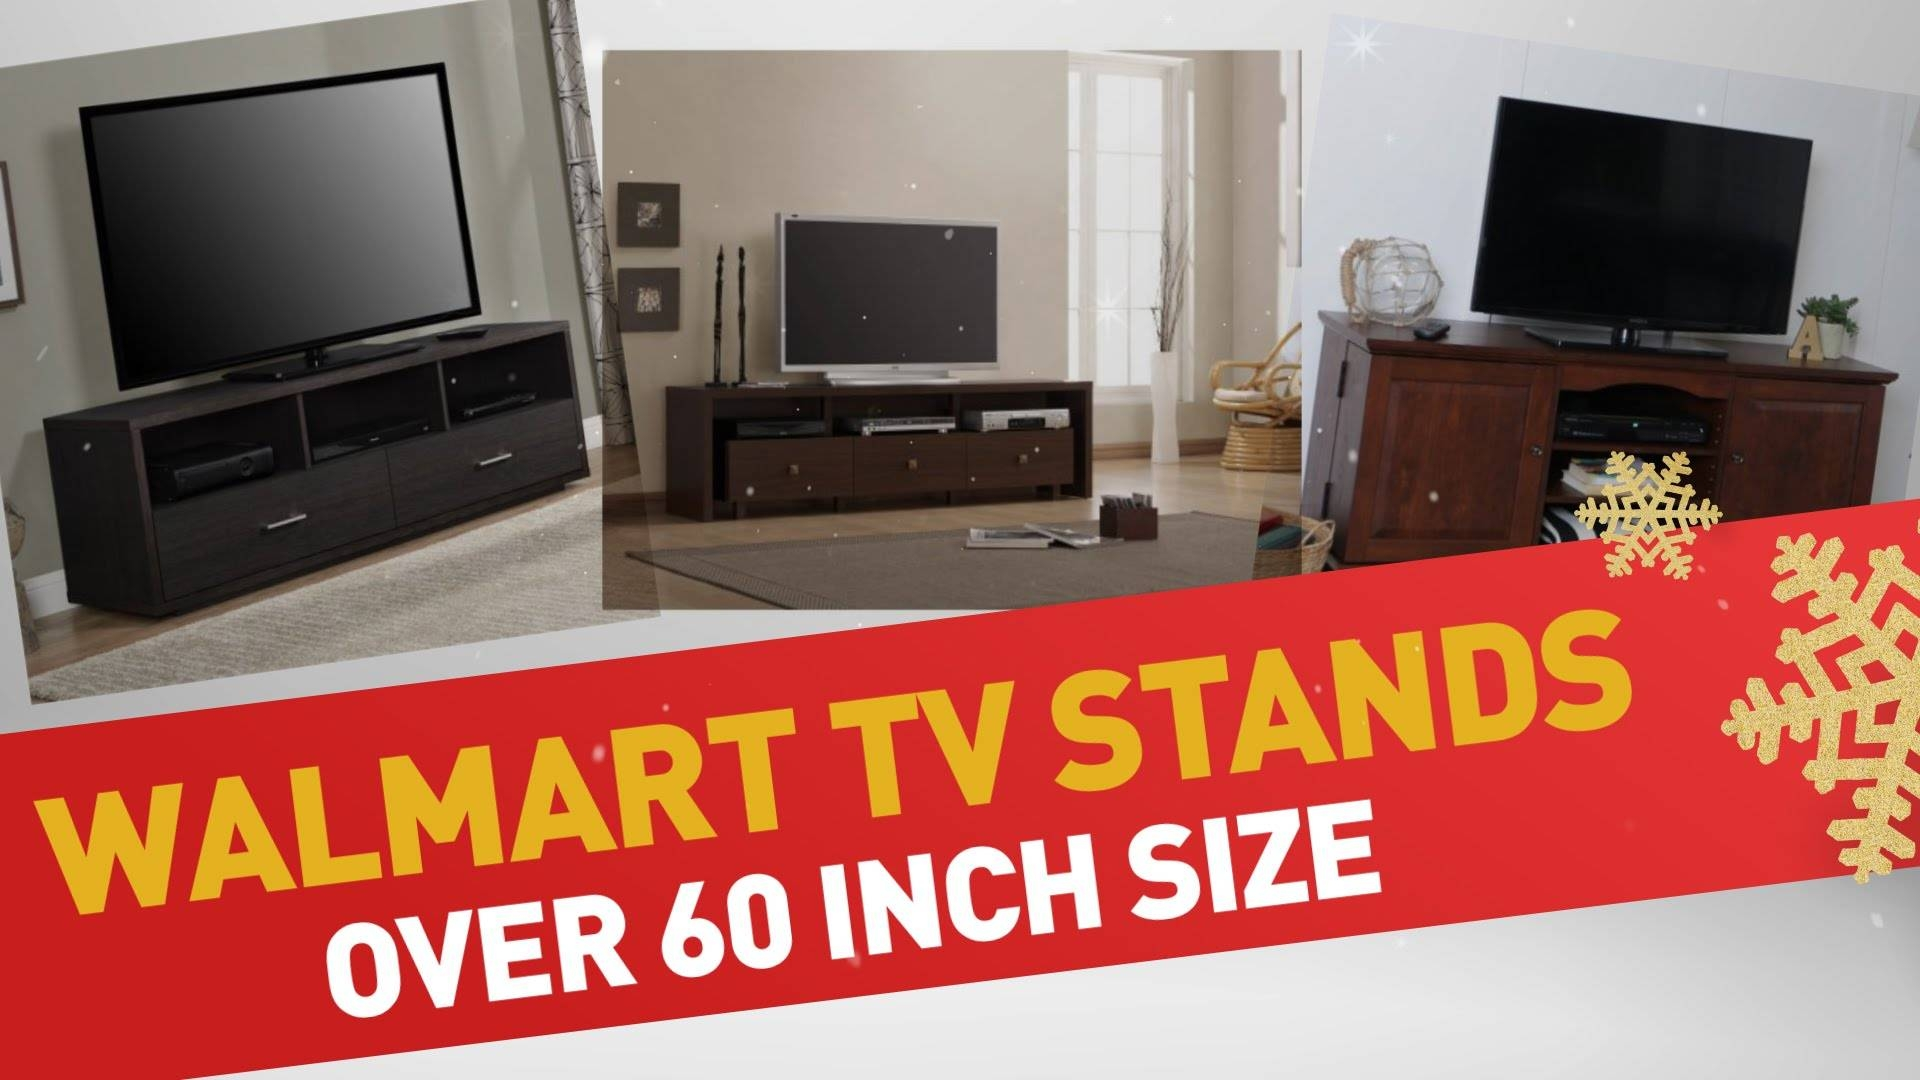 Walmart Tv Stands Over 60 Inch Size Best Sellers - Youtube with Cordoba Tv Stands (Image 15 of 15)